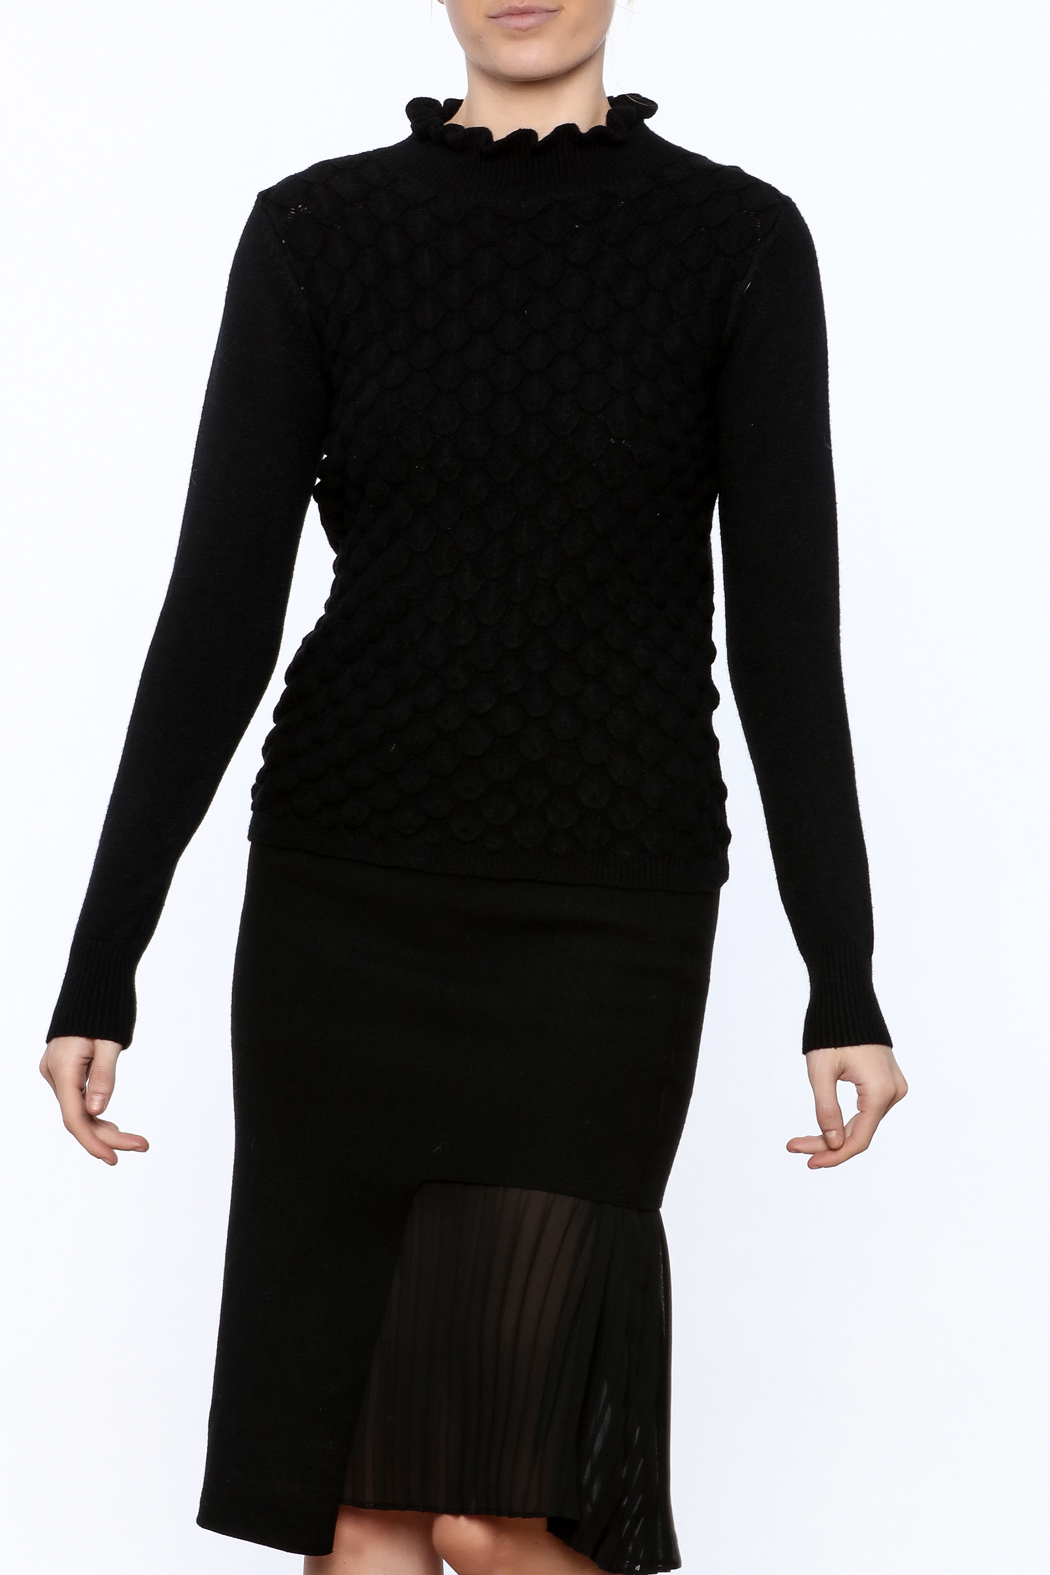 Lucy Paris Long Sleeve Mock Turtleneck Sweater - Main Image